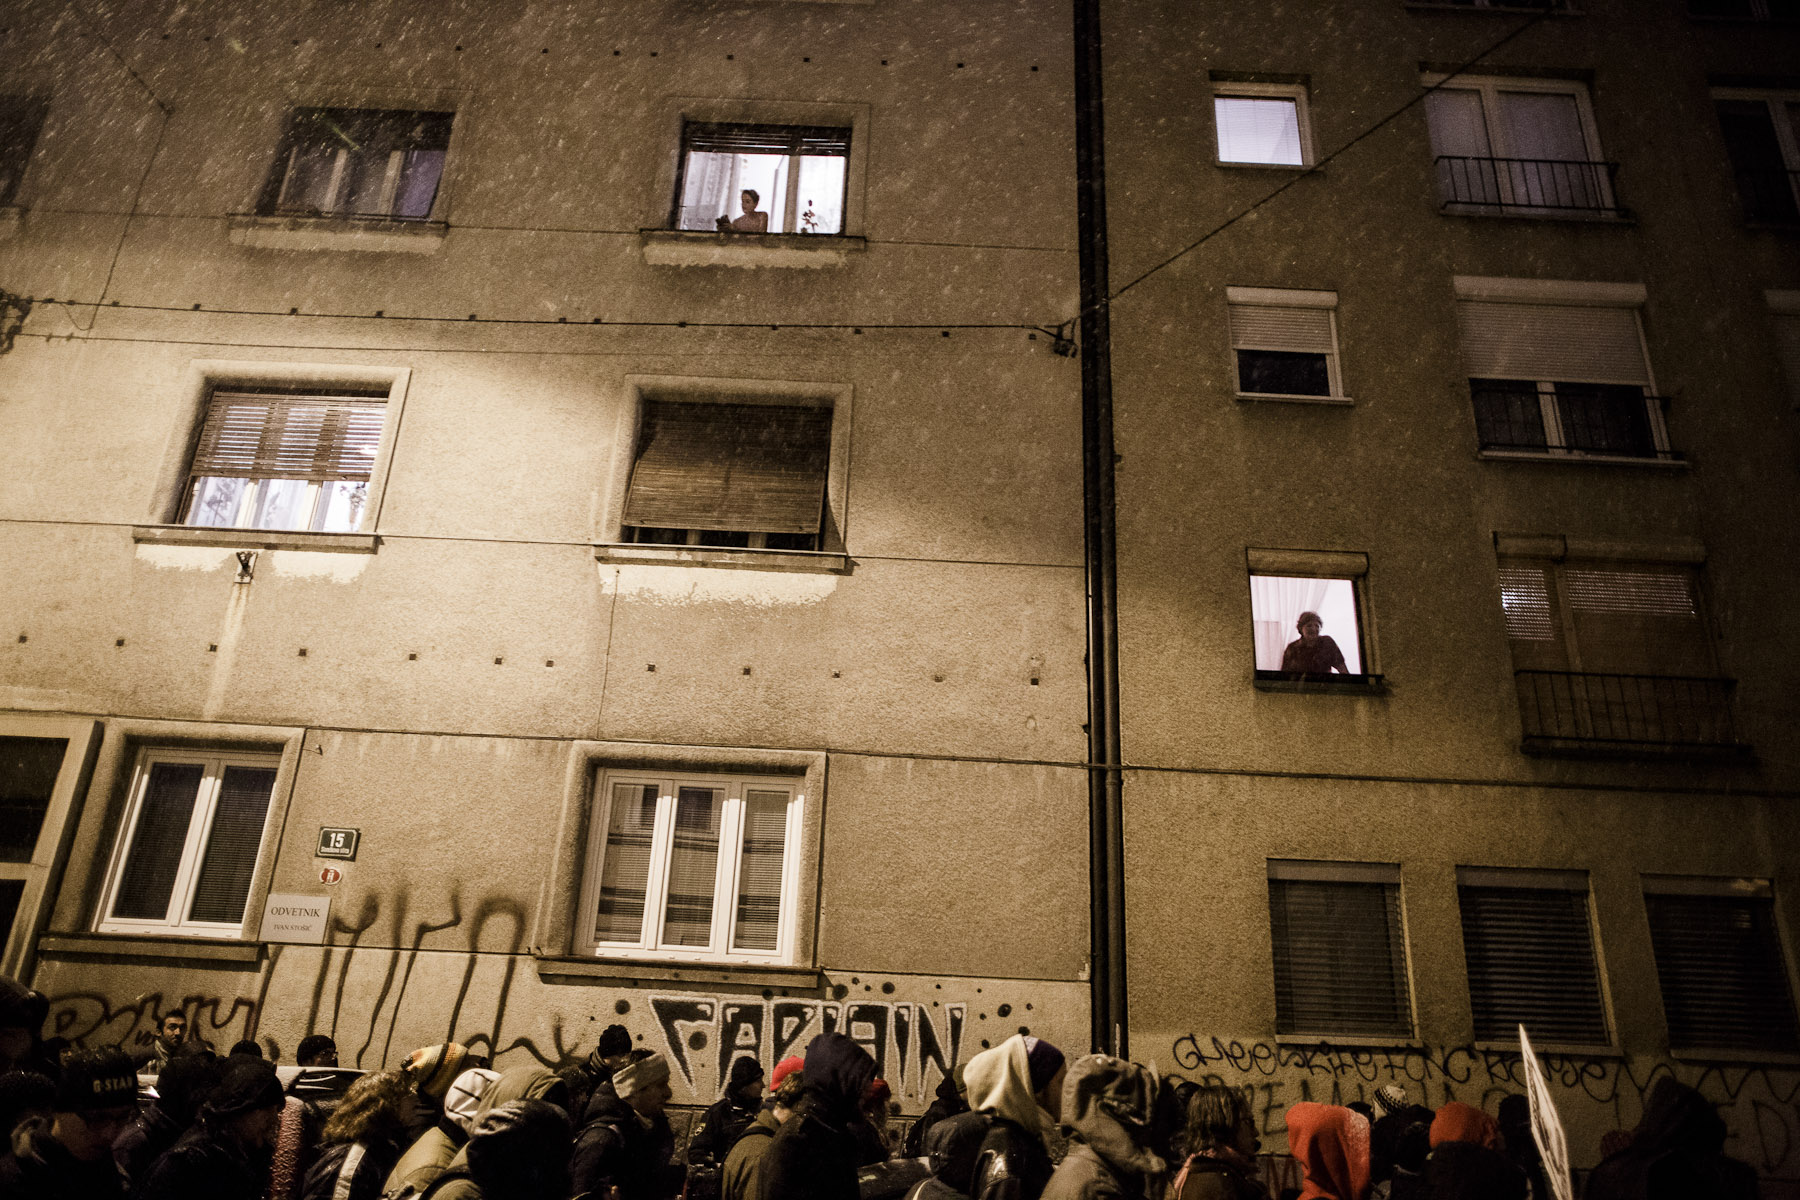 Protesters march through the streets as people watch from their windows during anti-government protests in Ljubljana, Slovenia, on December 7, 2012.